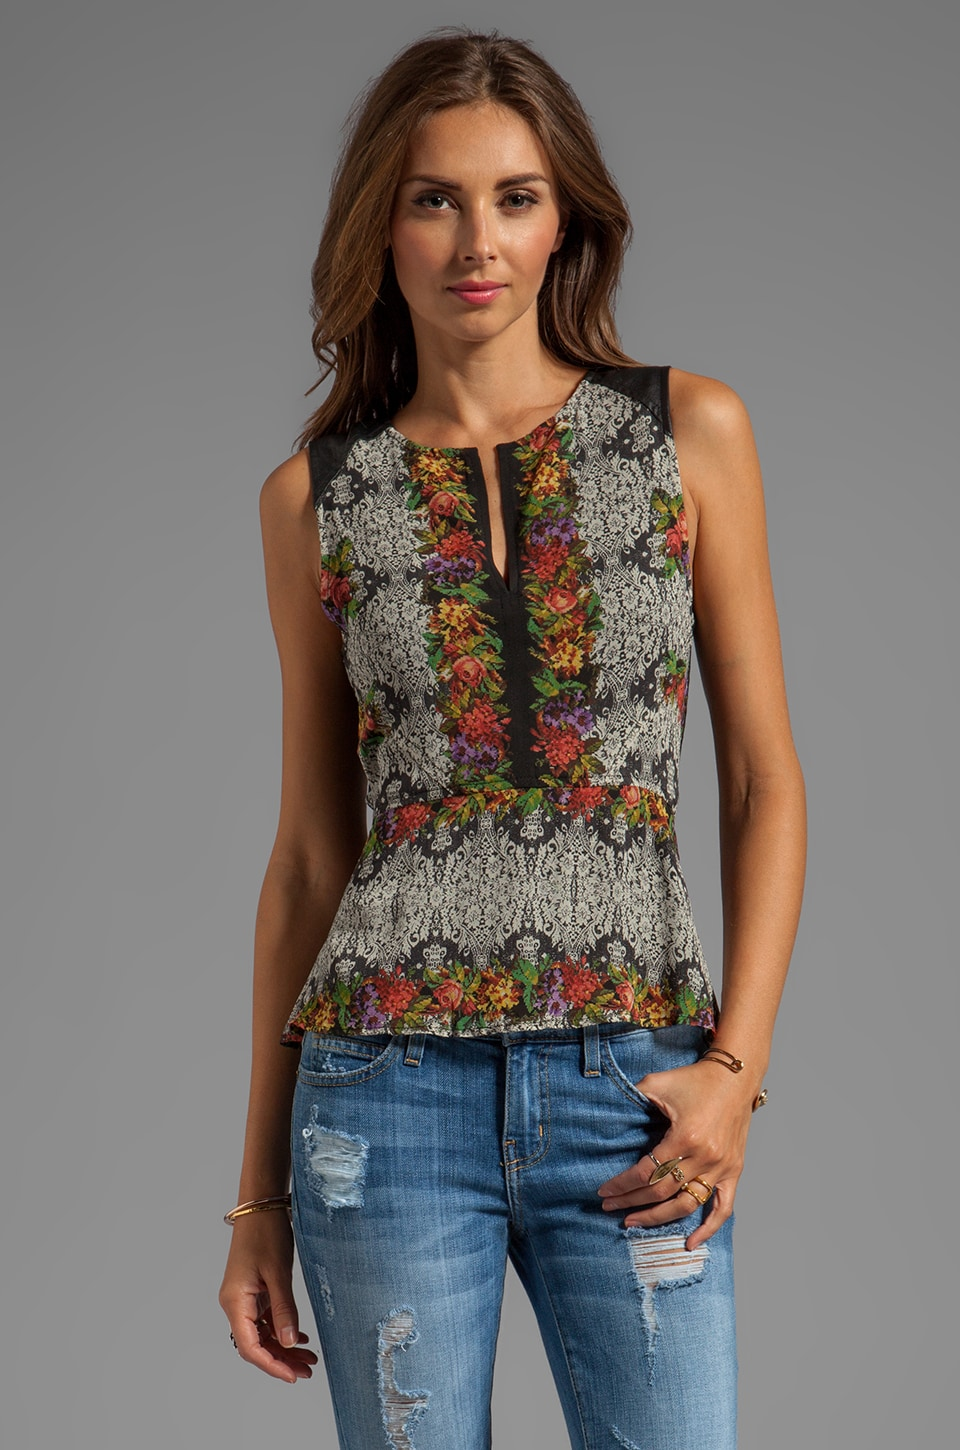 Sanctuary Soft Wovens Tapestry Peplum in Needlepoint Floral